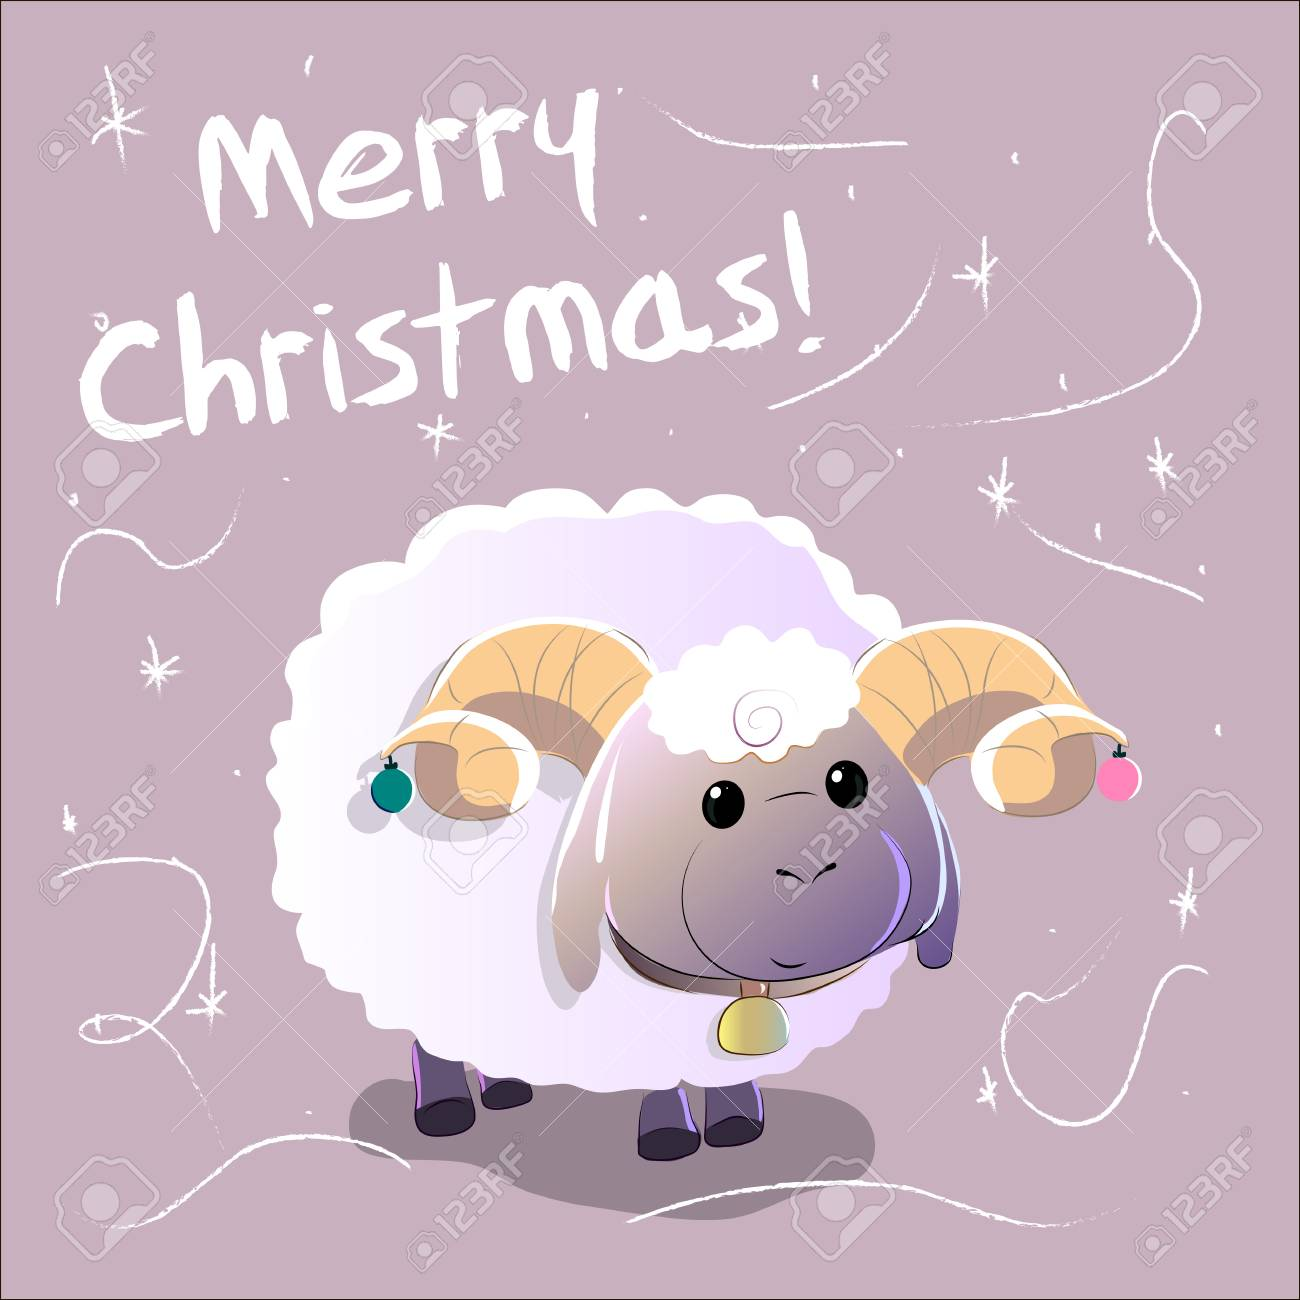 greeting card with sheep text merry christmas and happy new year hand drawn vector